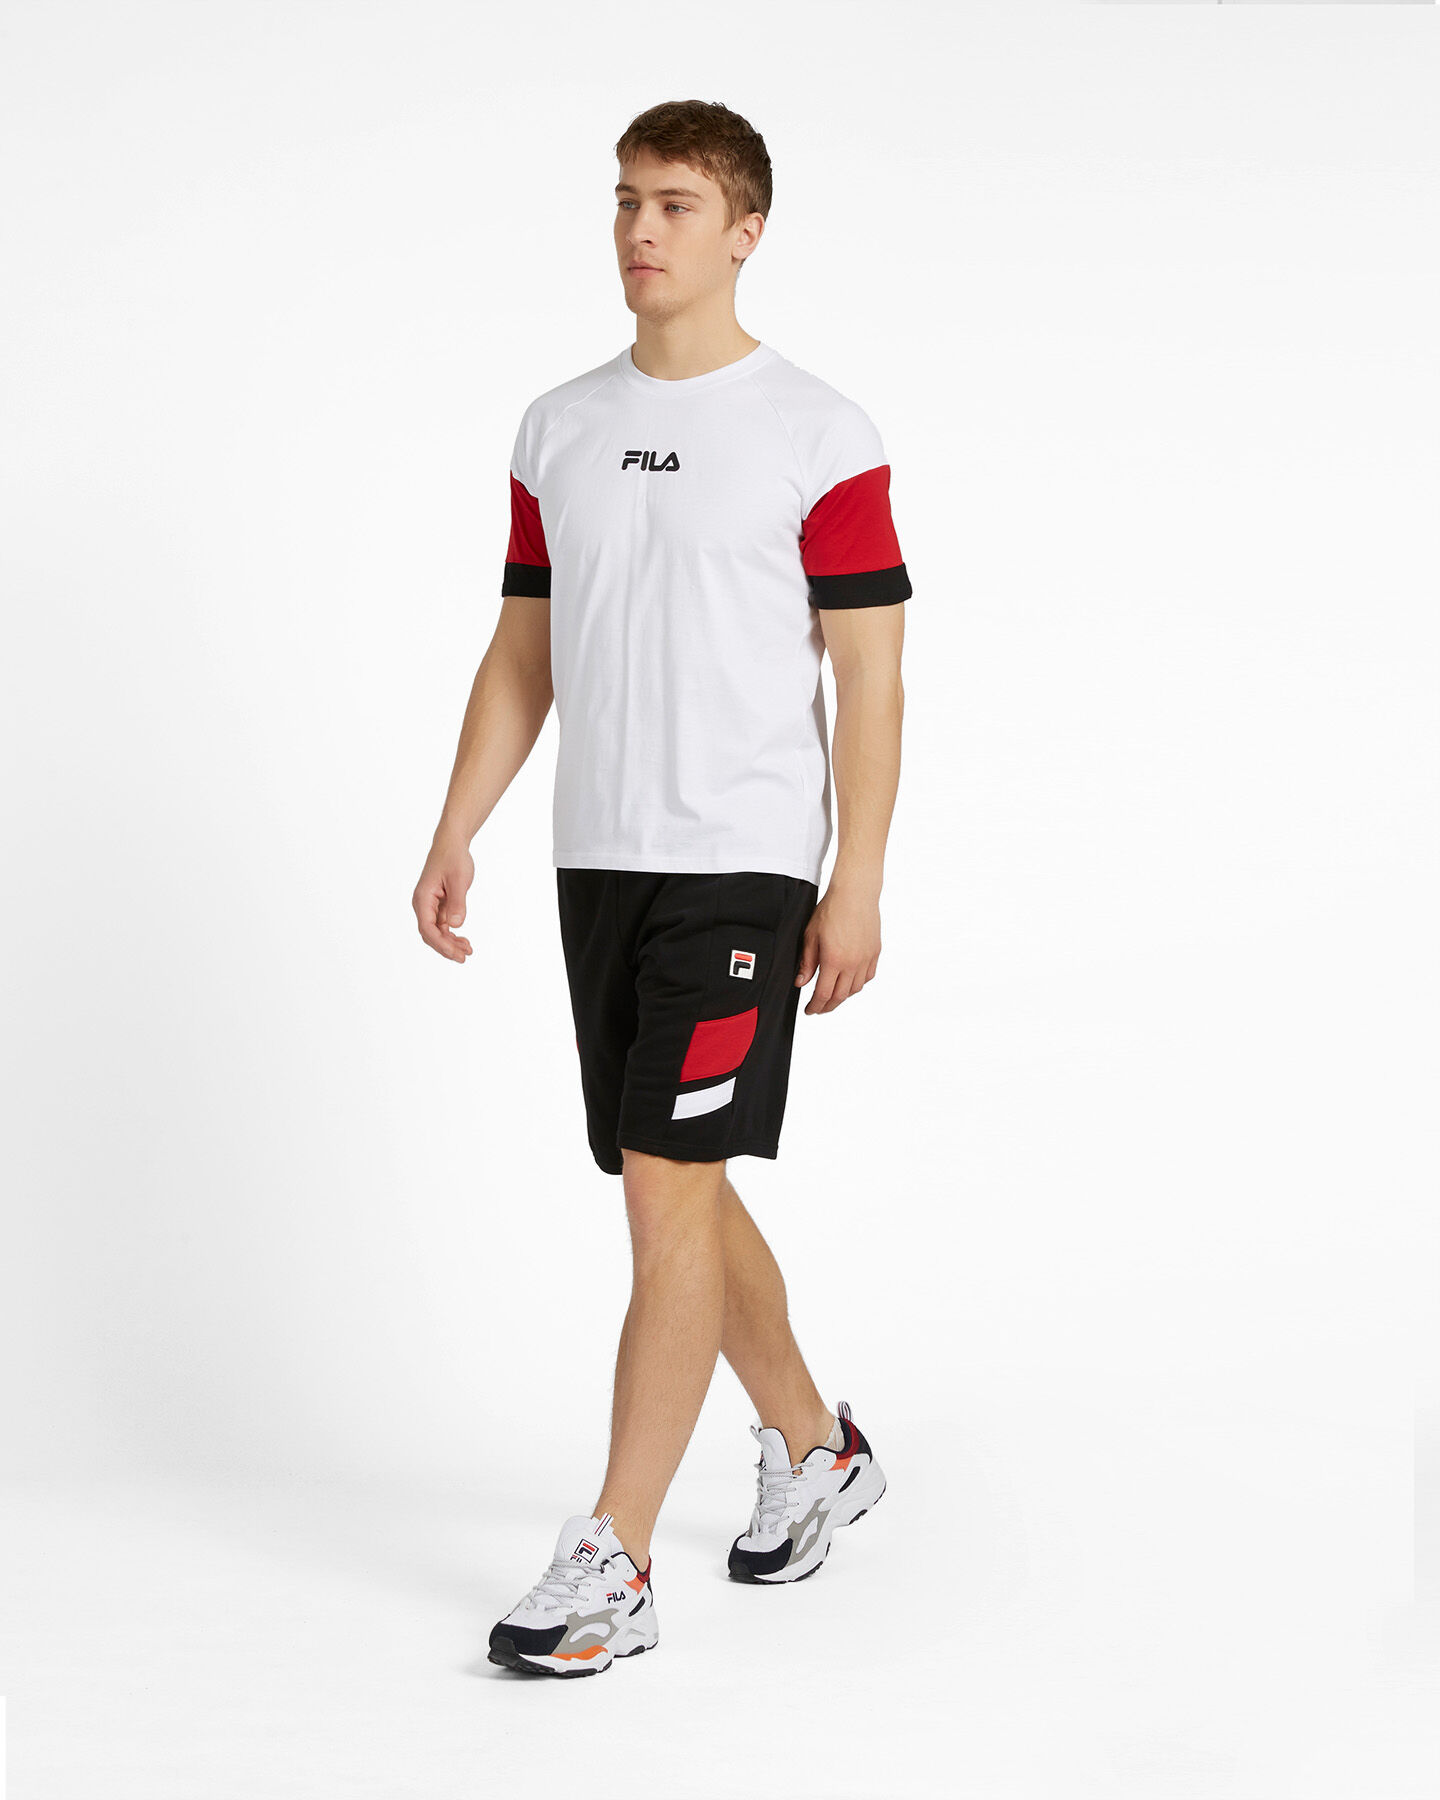 T-Shirt FILA NEW COLOR BLOCK M S4088467 scatto 3